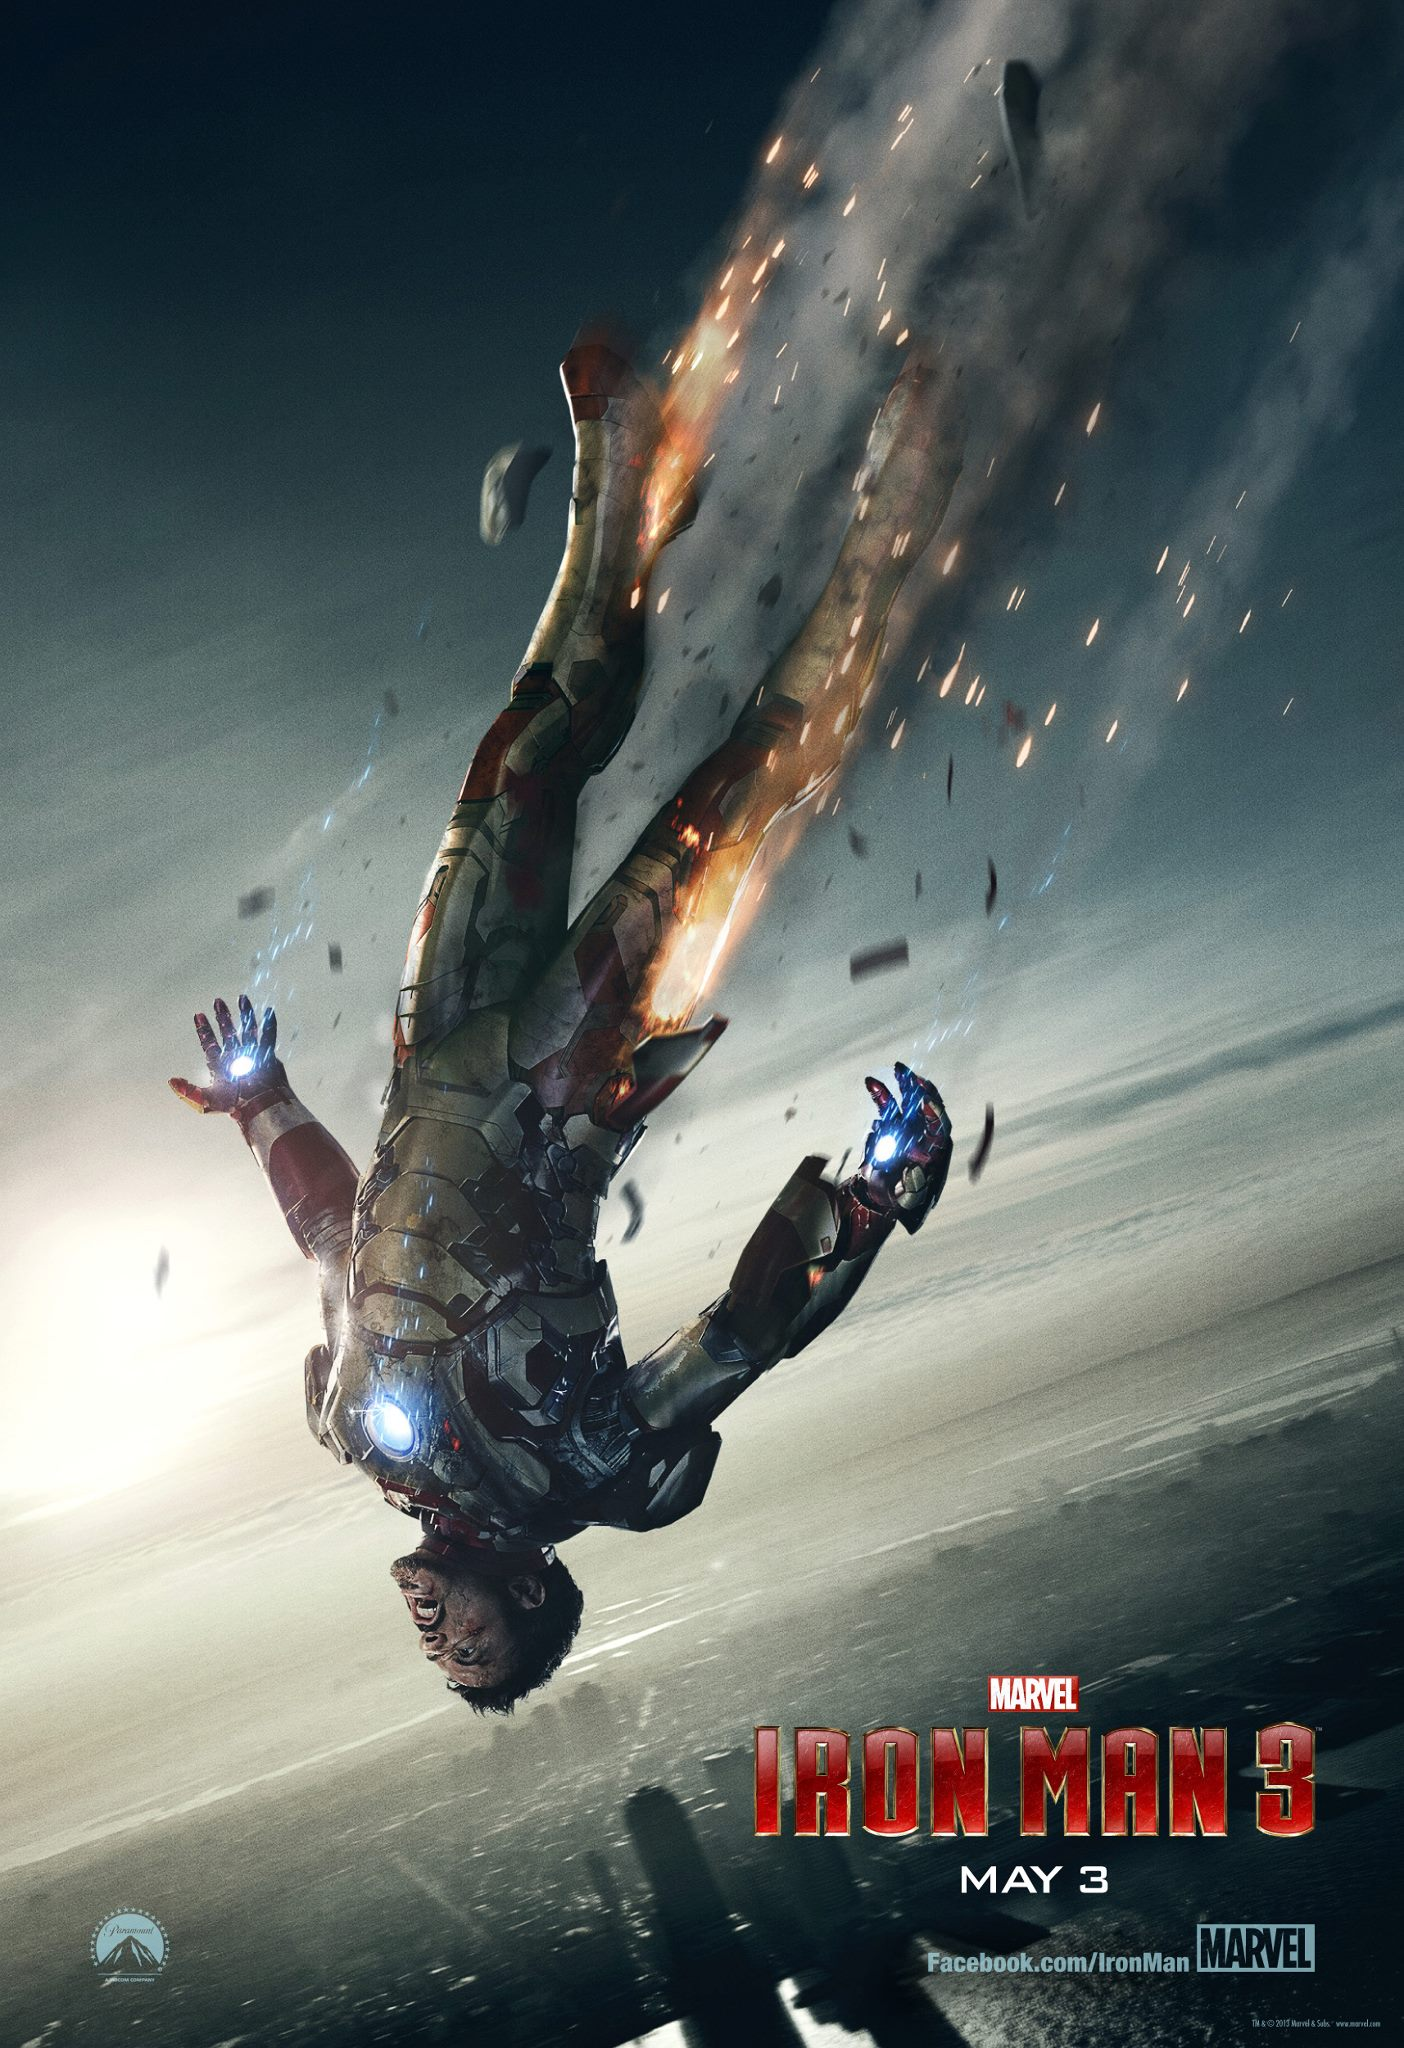 IRON-MAN-3-Second-Official-Poster-for-Marvel's